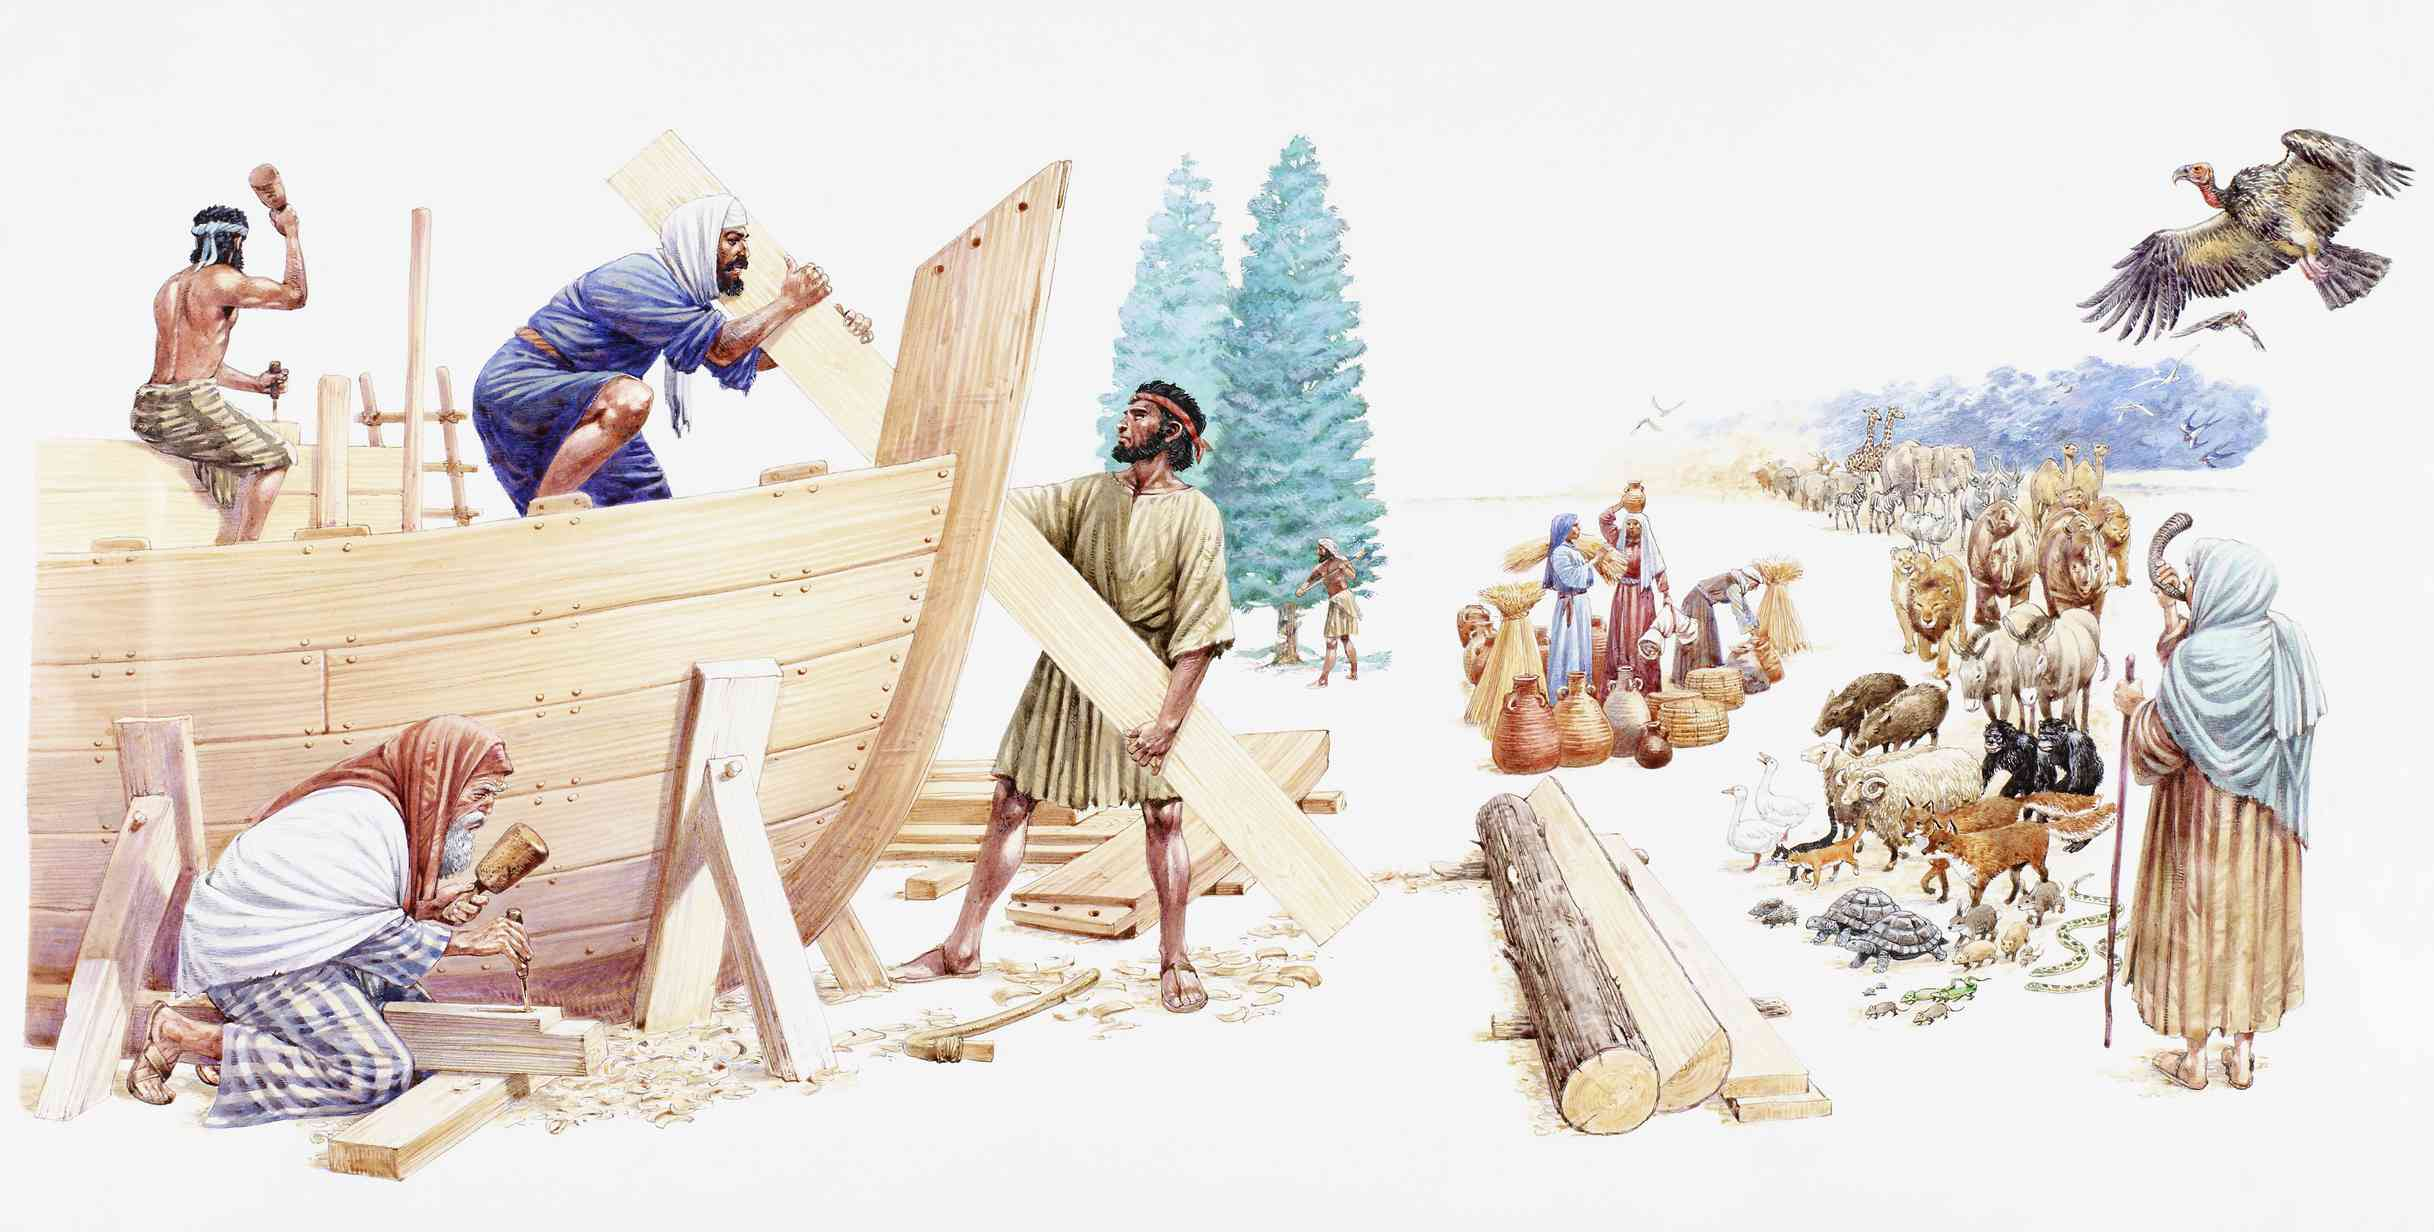 Noah and his sons building the Ark.